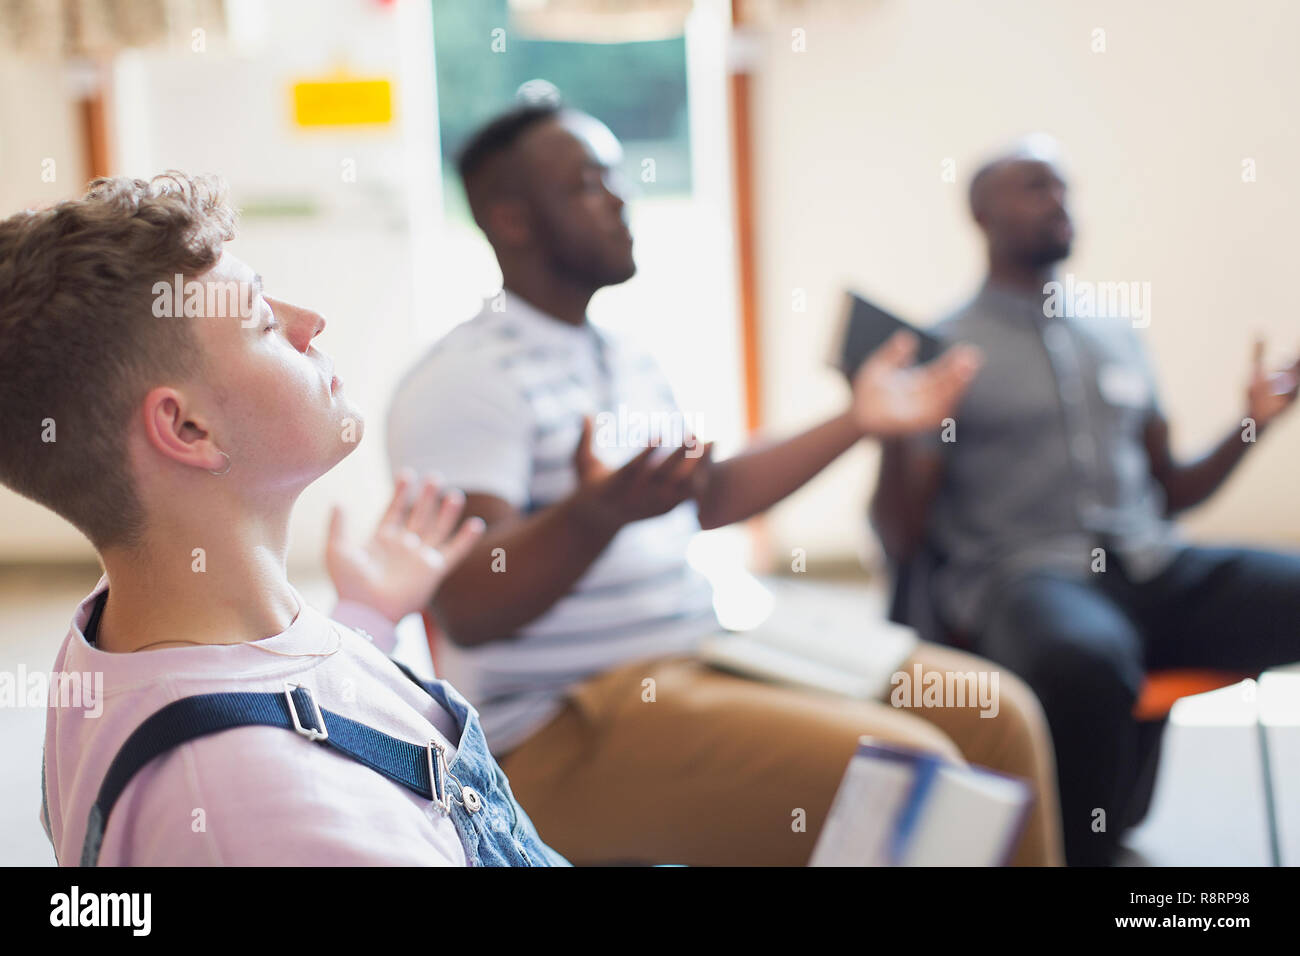 Serene man praying with arms outstretched in prayer group - Stock Image